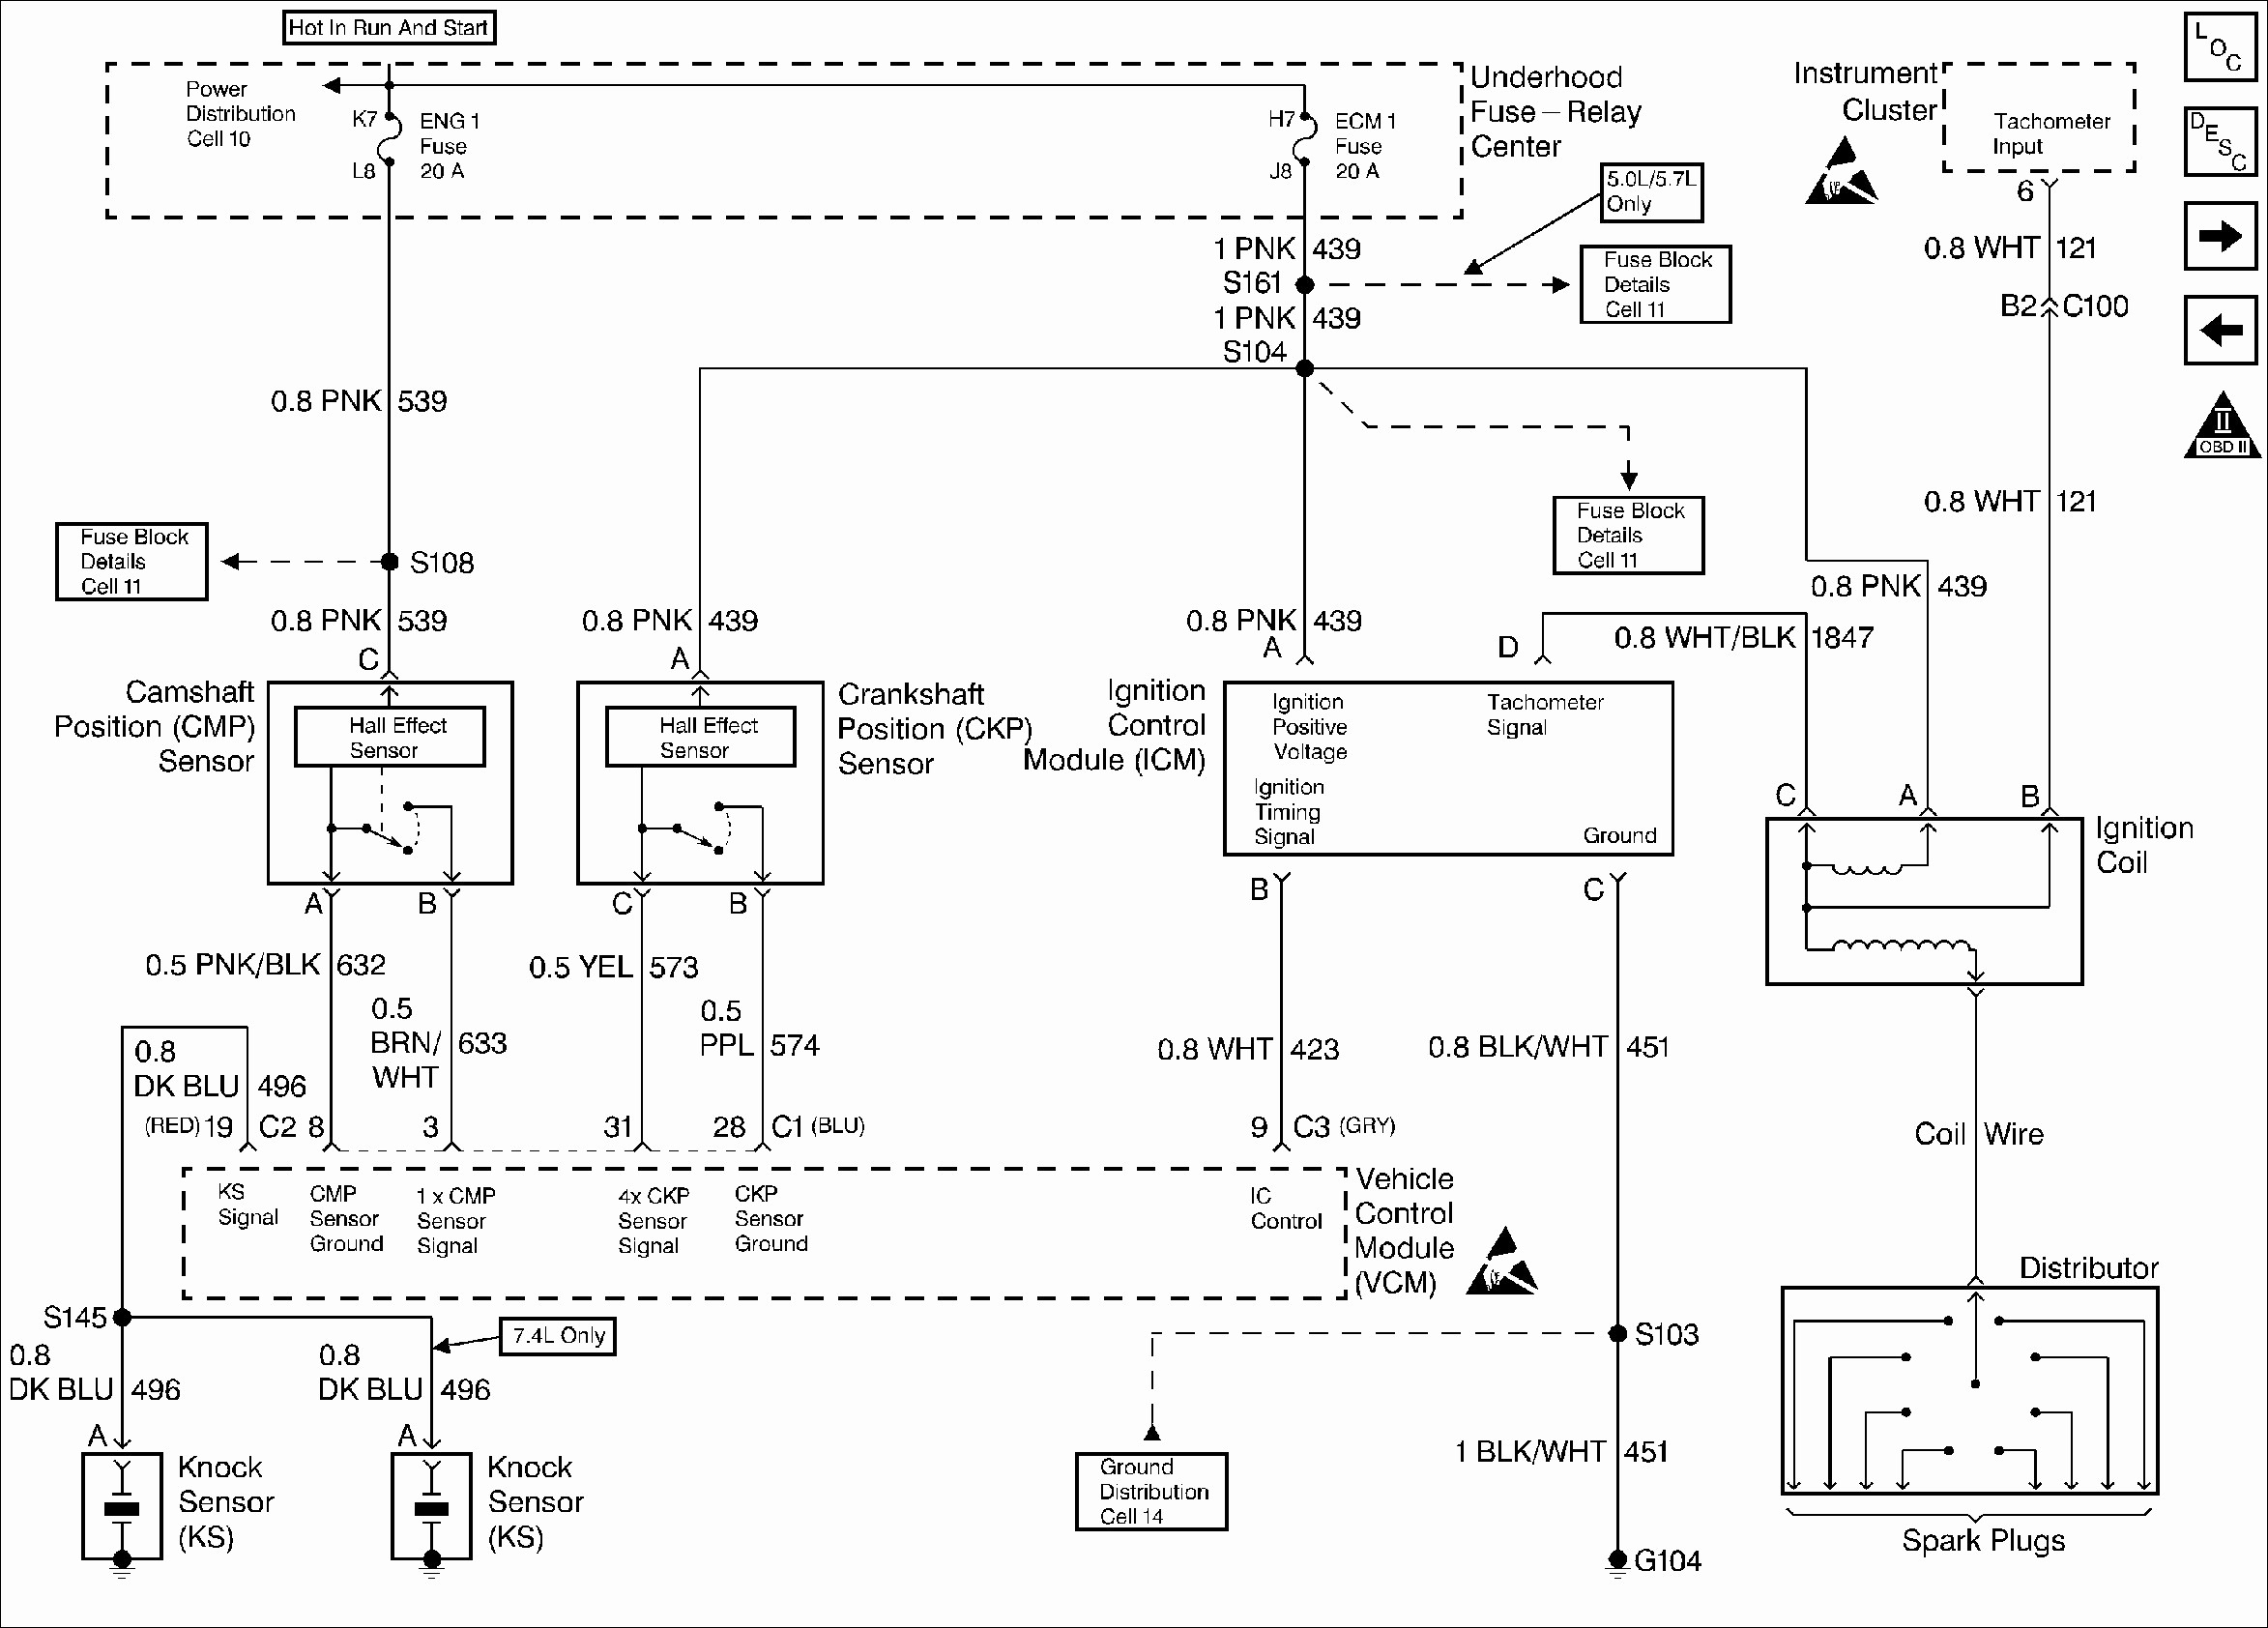 4 3 vortec firing order diagram of breast milk ducts chevy s10 engine sensors wiring library